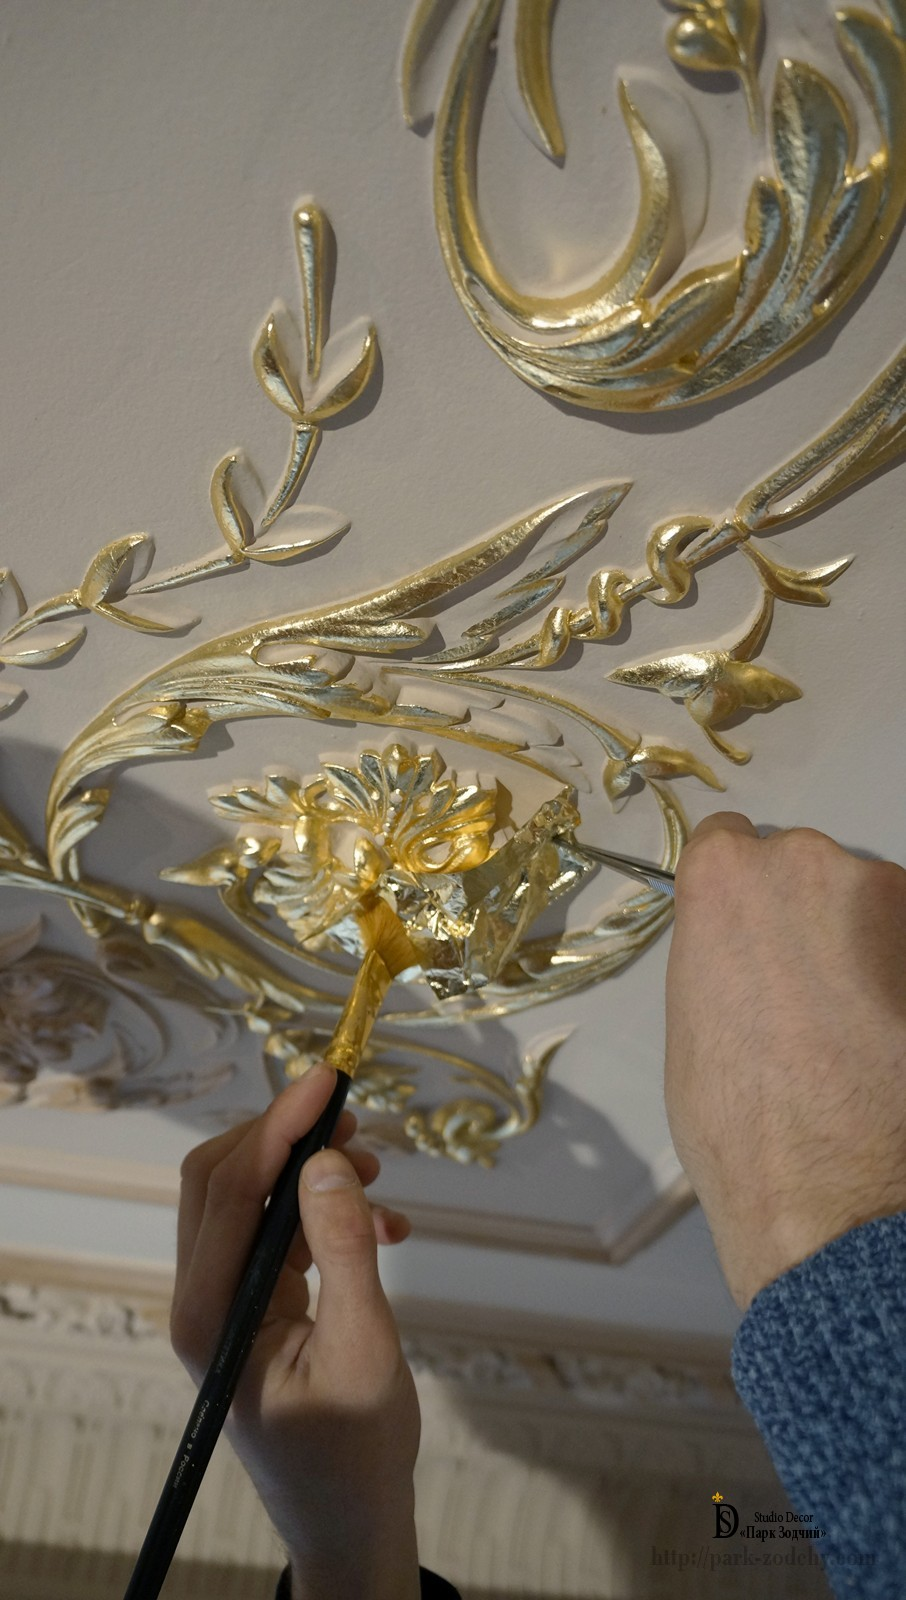 An example of the technique of gilding in the interior